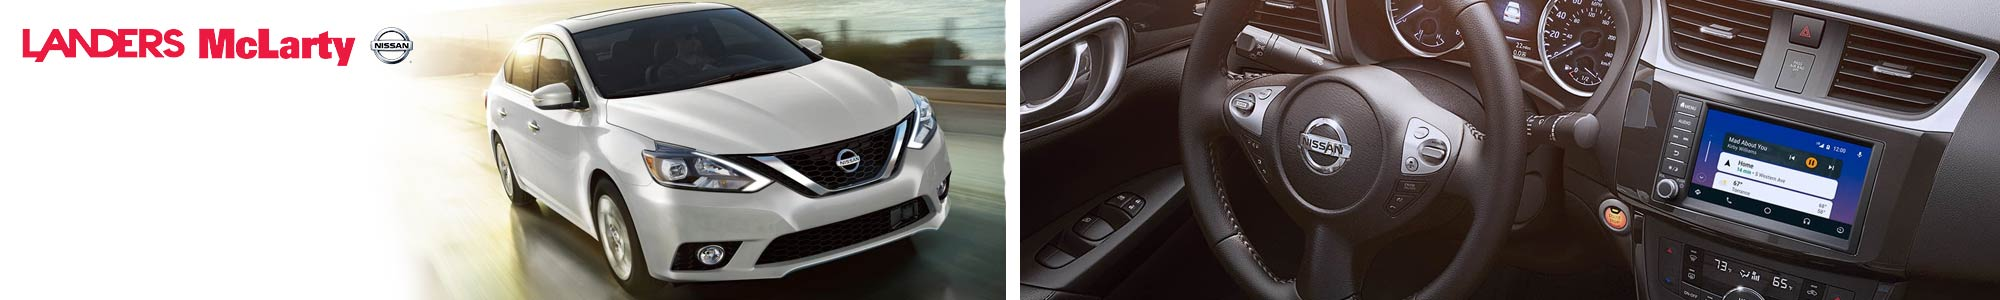 2020 Nissan Altima Interior and Exterior